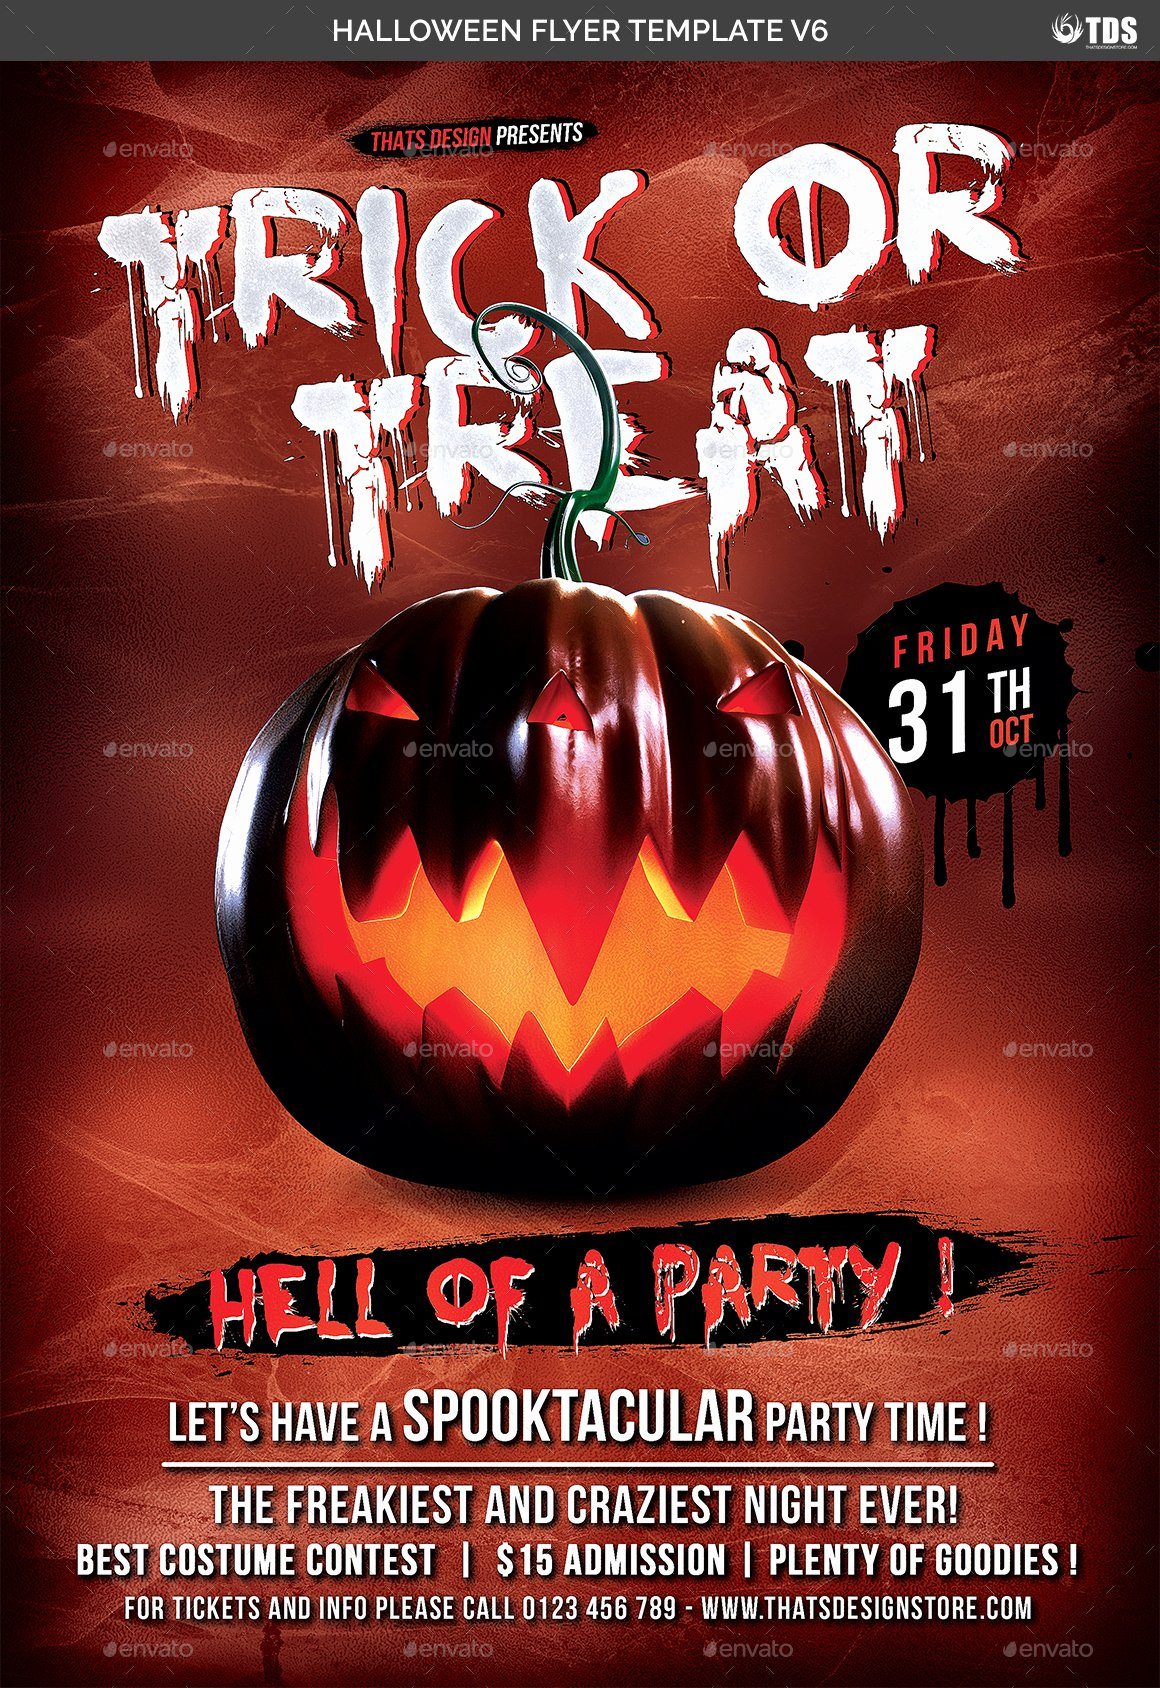 Halloween Flyer Template Free Fresh Halloween Flyer Template V6 by Lou606